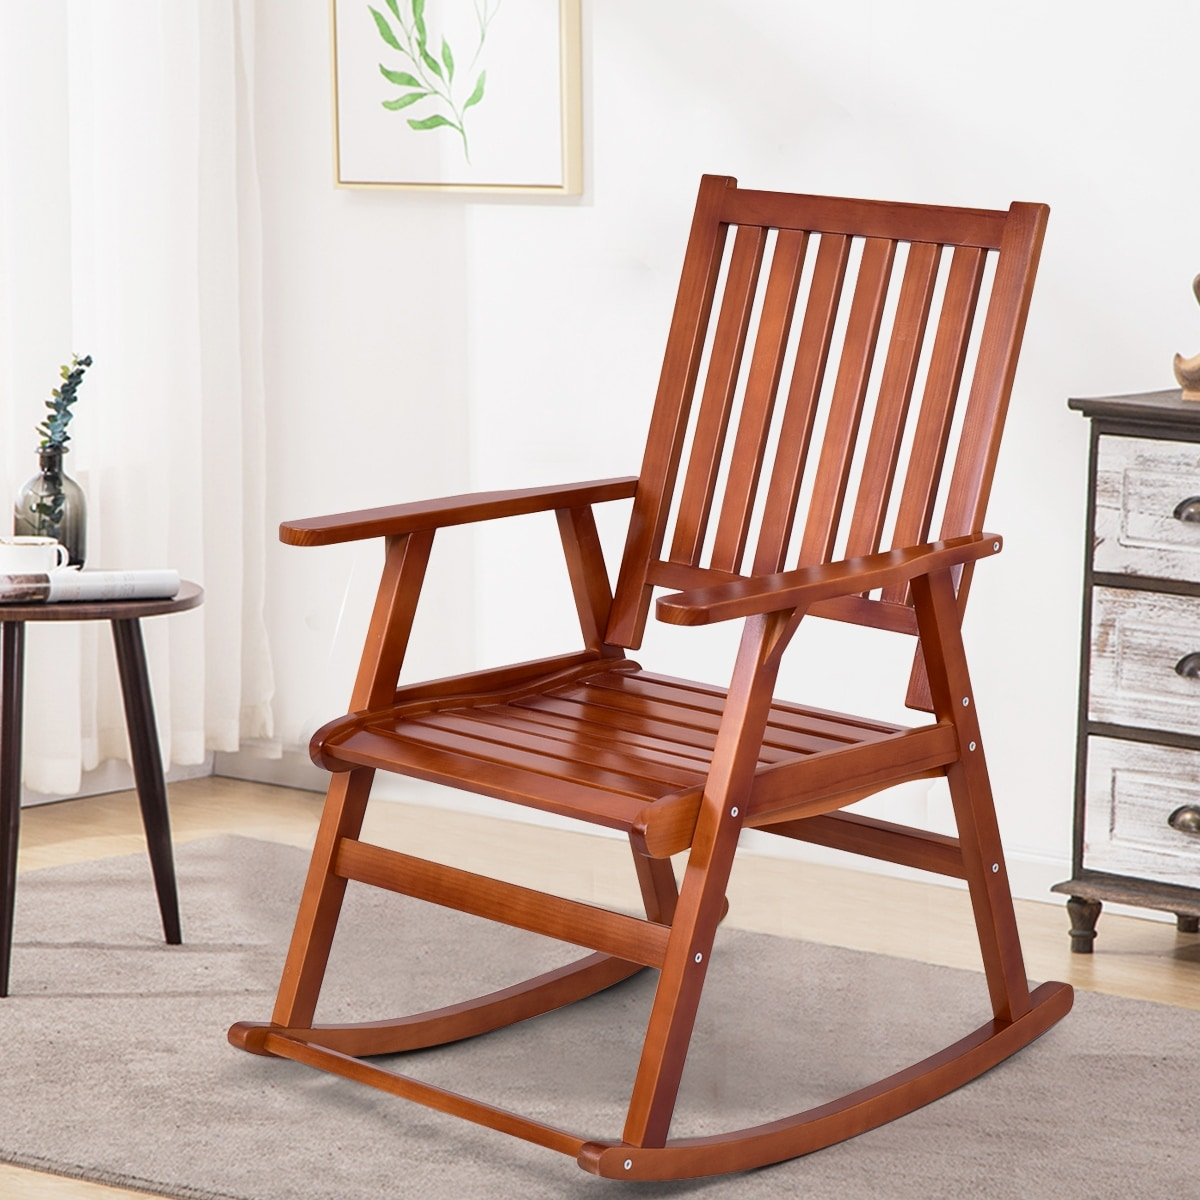 Costway Wood Rocking Chair Single Porch Rocker Indoor Outdoor Patio Furniture Natural Free Shipping Today 21029436